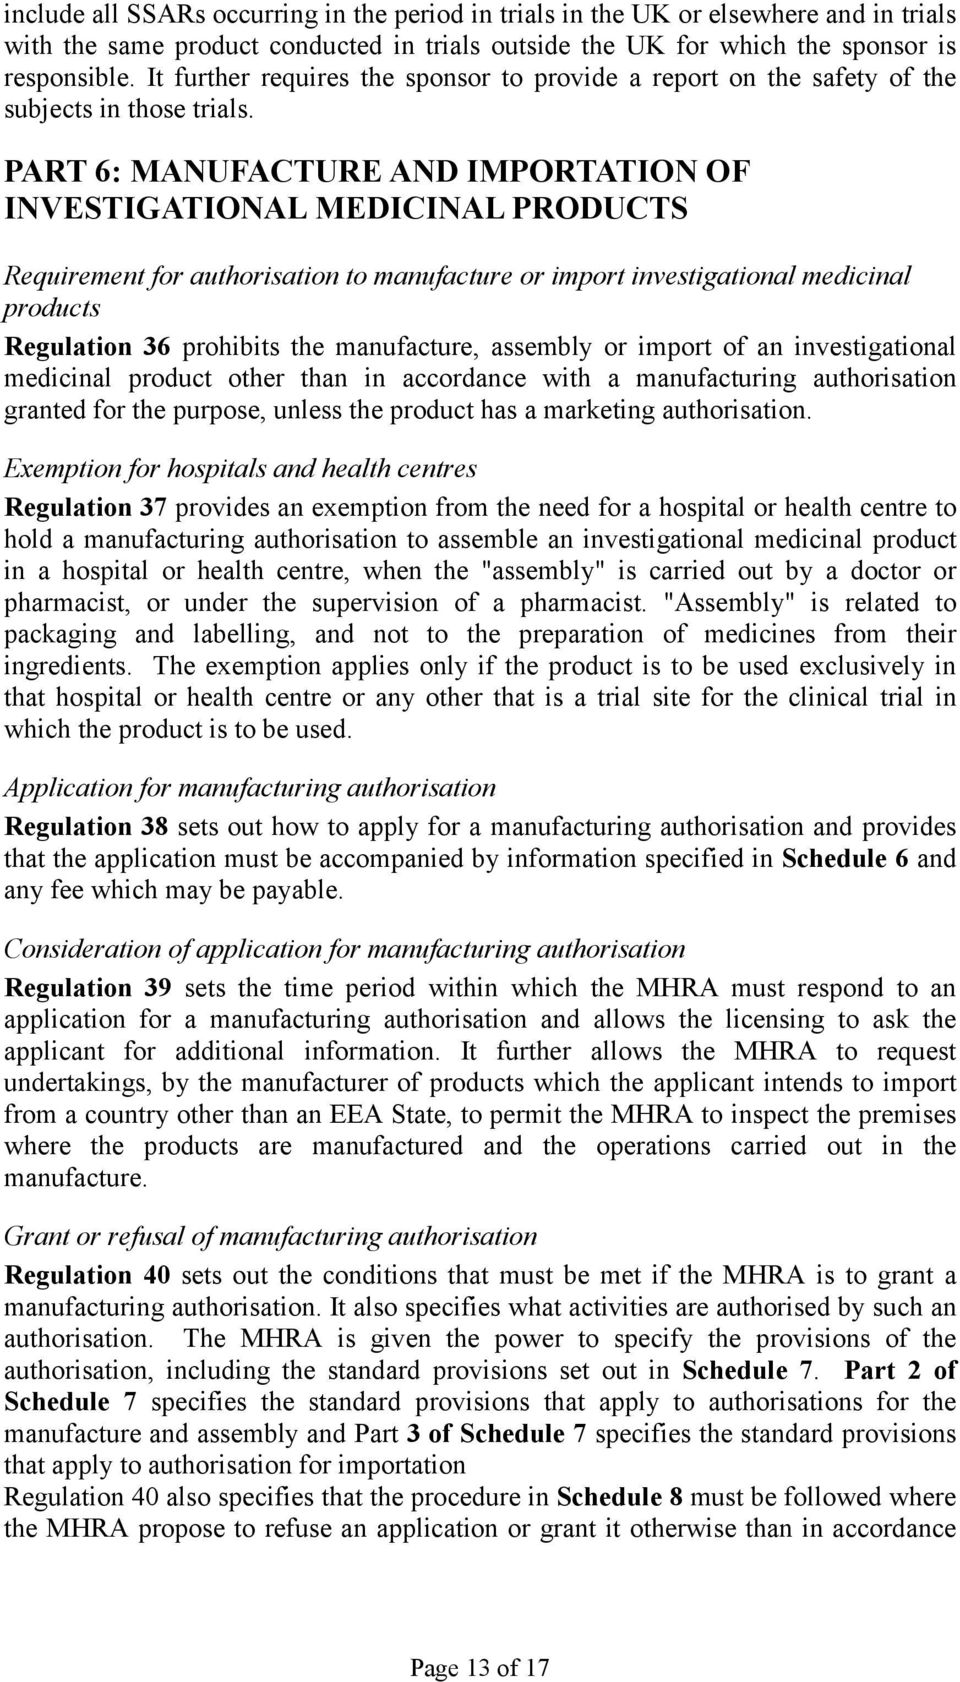 PART 6: MANUFACTURE AND IMPORTATION OF INVESTIGATIONAL MEDICINAL PRODUCTS Requirement for authorisation to manufacture or import investigational medicinal products Regulation 36 prohibits the